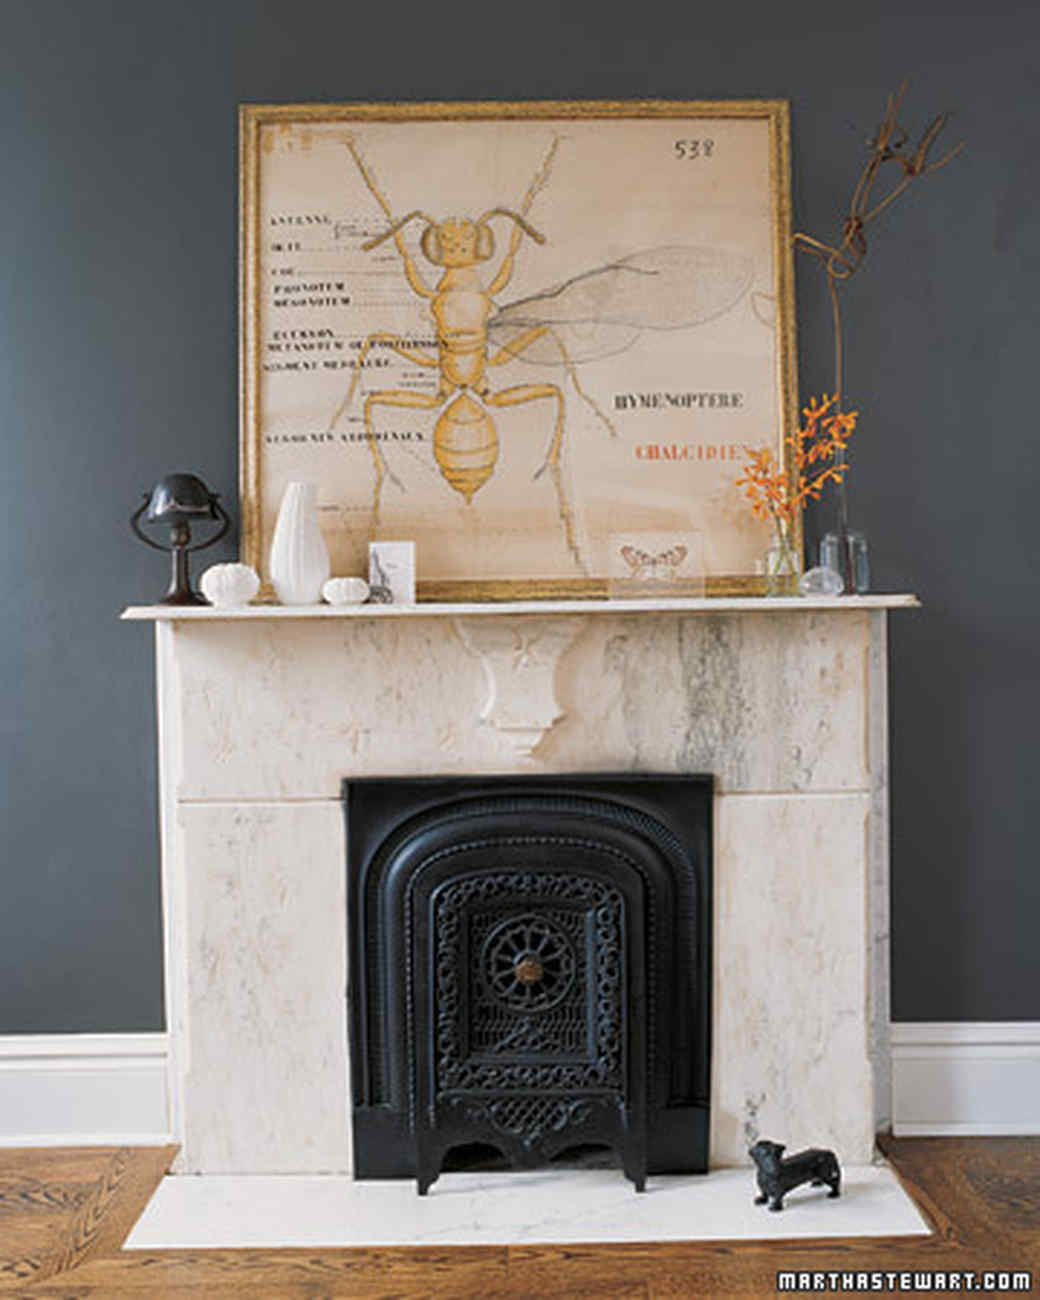 Easy Elegance - Straight From The Hearth: Beautiful Fireplace Surround Ideas